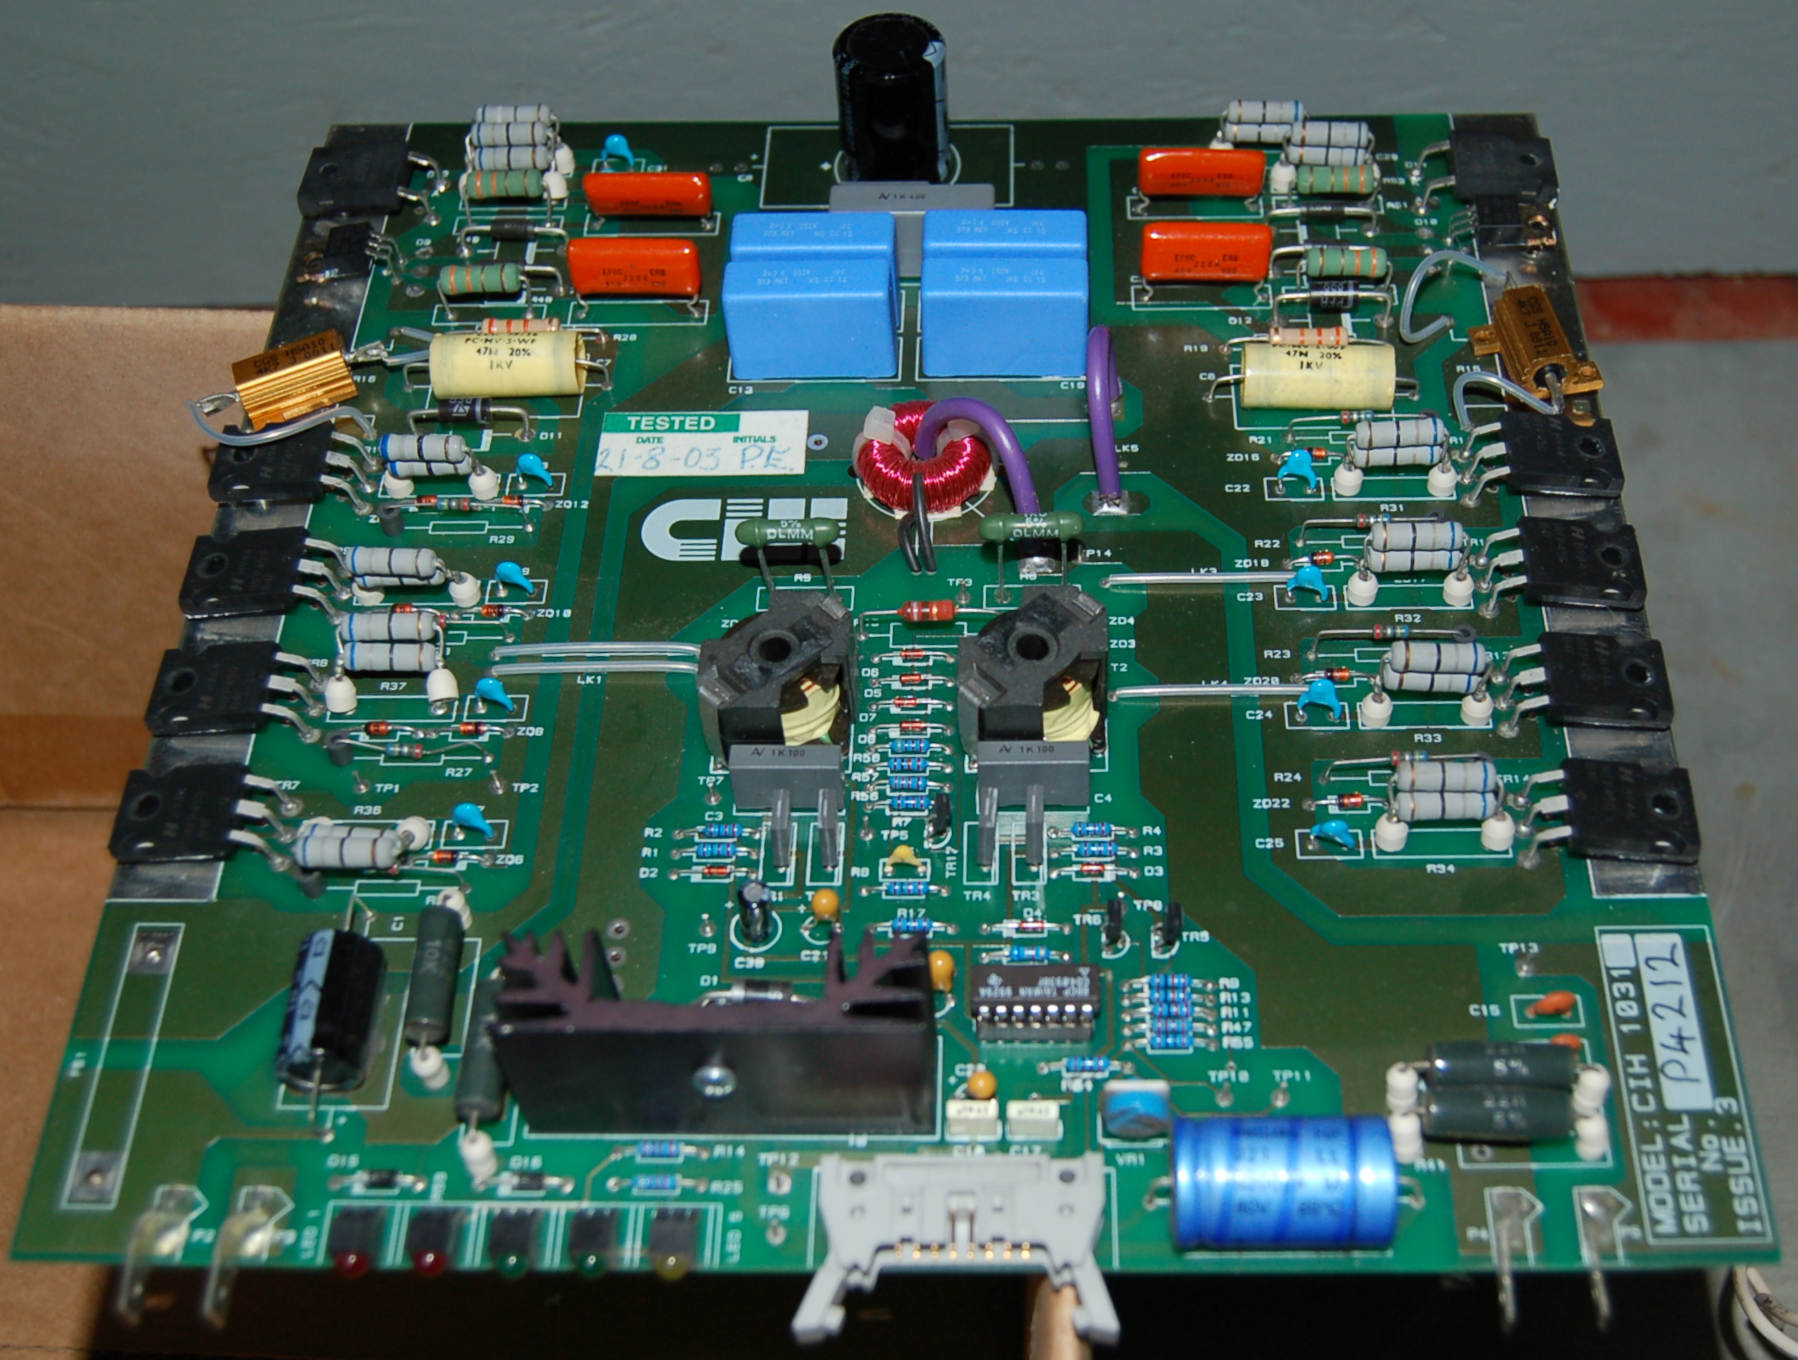 Cheltenham Induction Heater CIH1031 Board, Issue 3